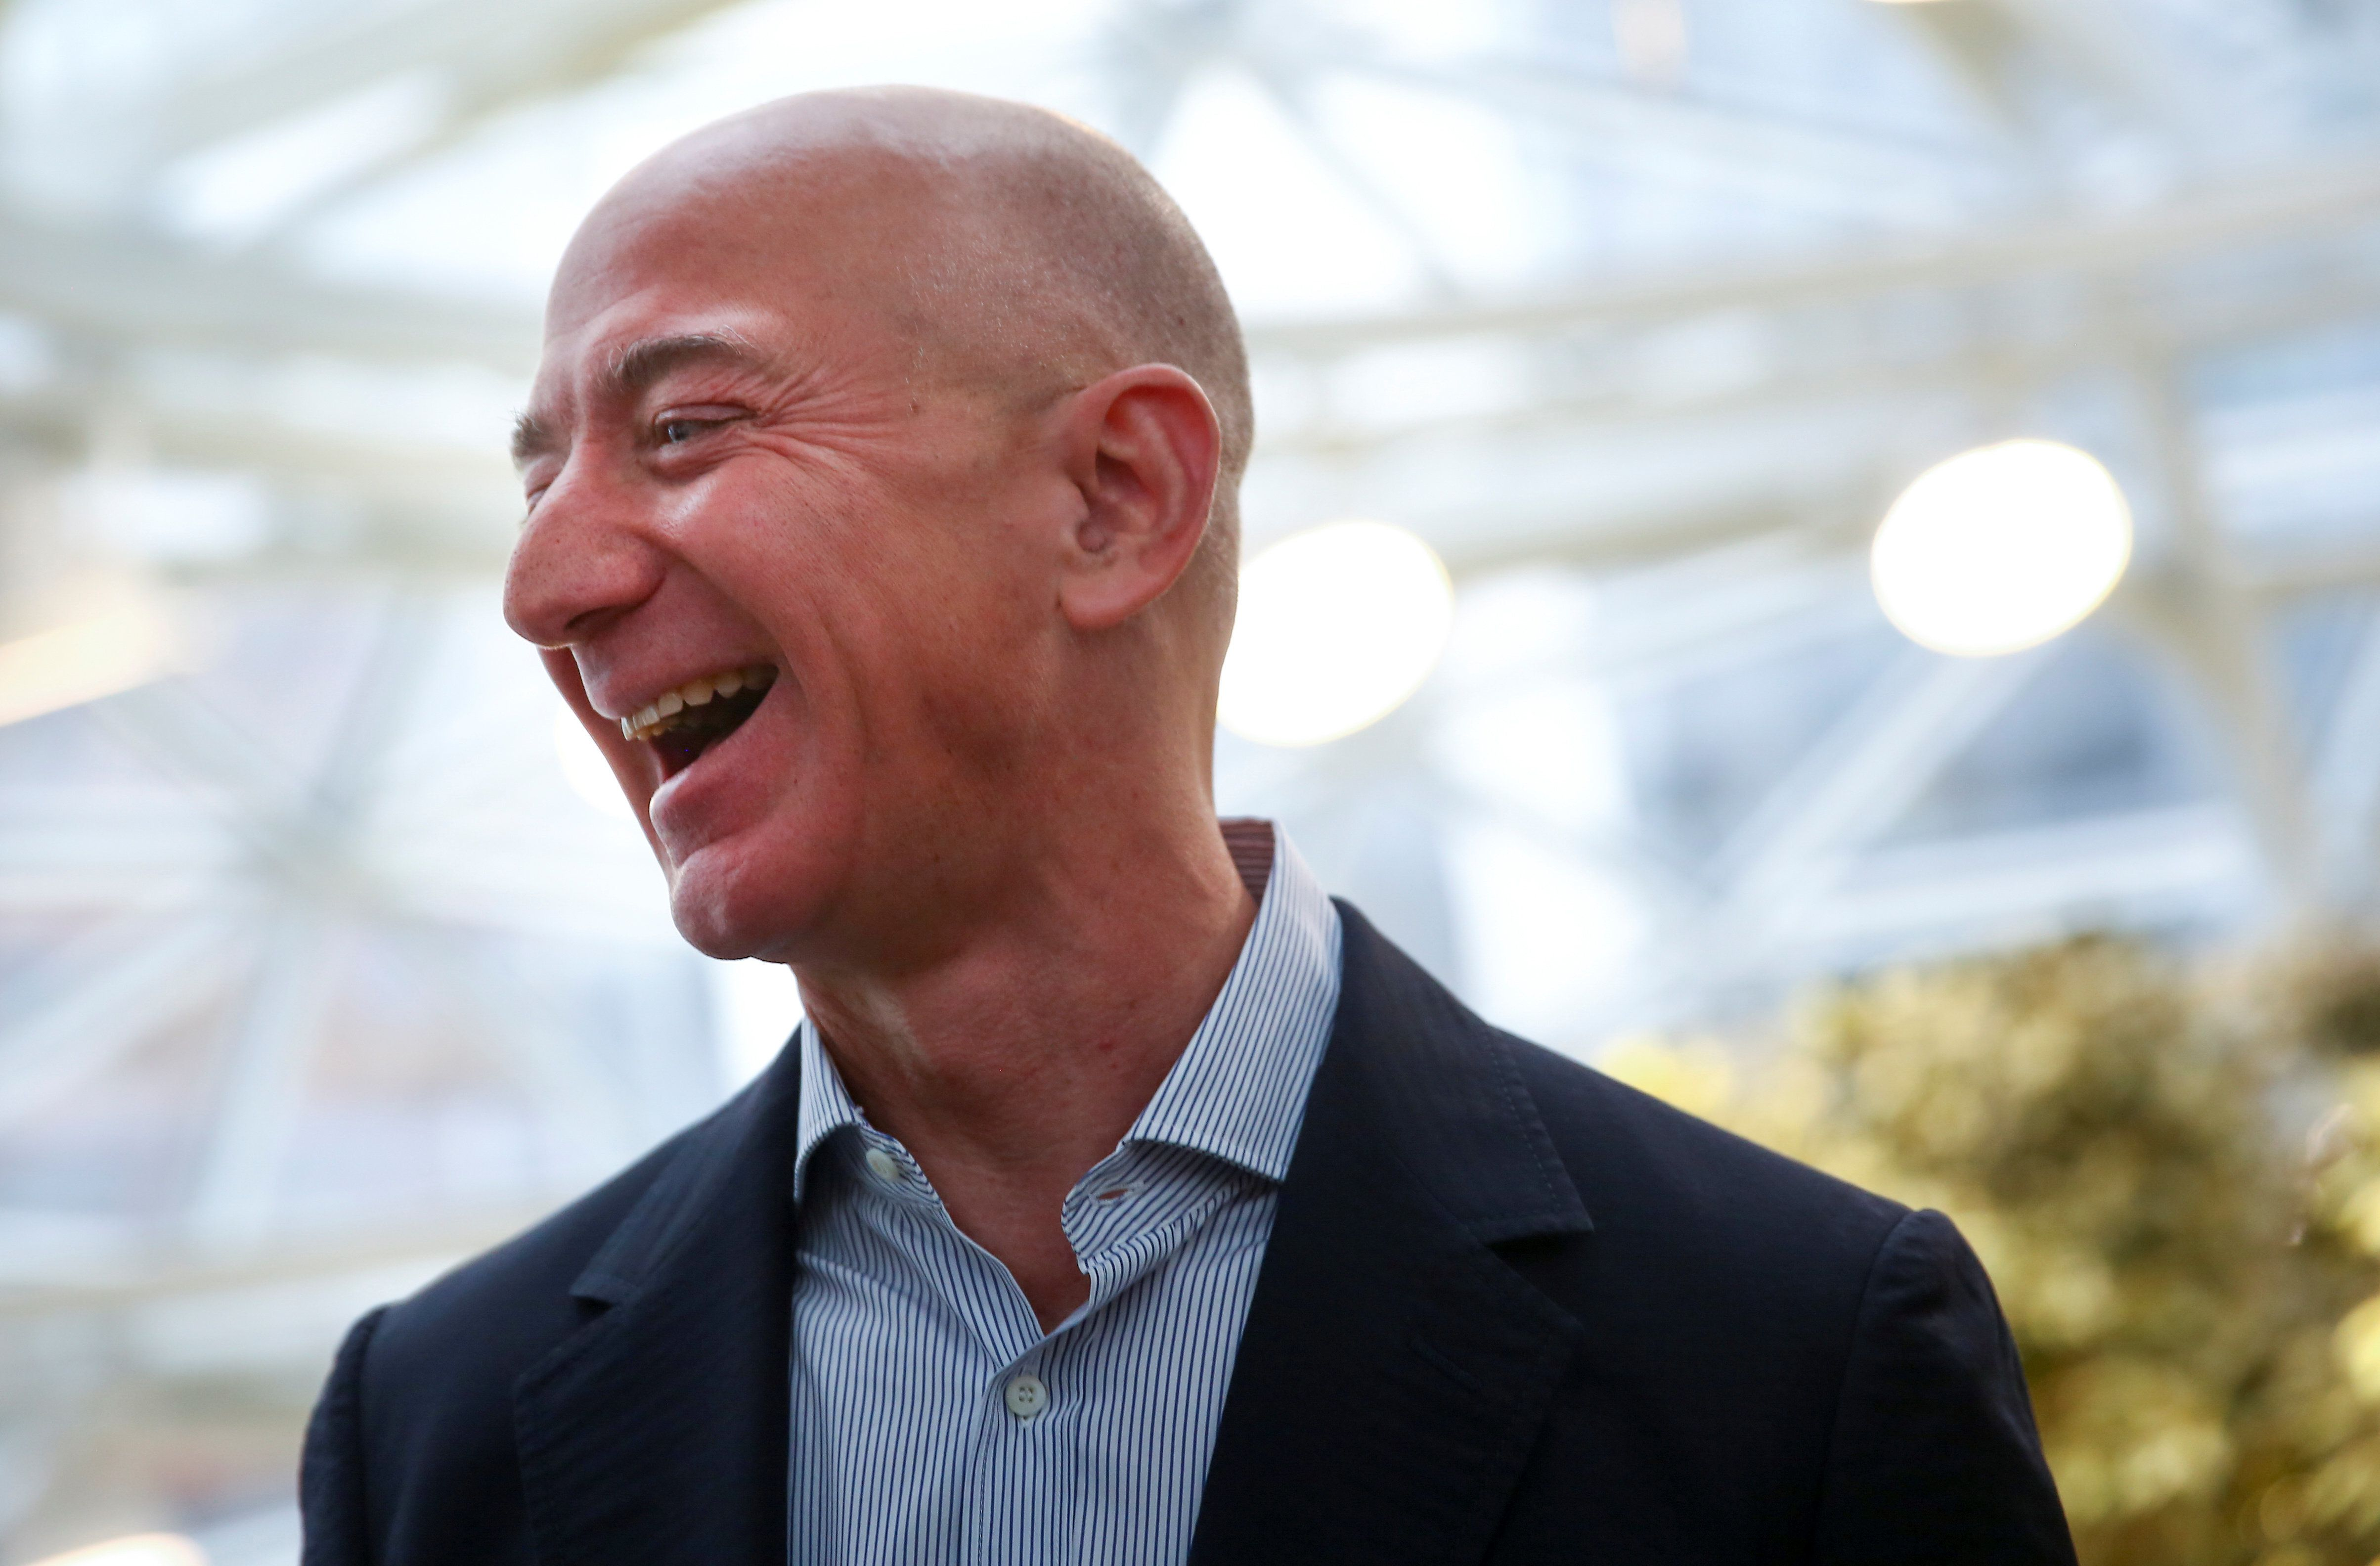 Amazon founder and CEO Jeff Bezos laughs as he talks to the media while touring the new Amazon Spheres during the grand opening at Amazon's Seattle headquarters in Seattle, Washington, U.S., January 29, 2018.   REUTERS/Lindsey Wasson